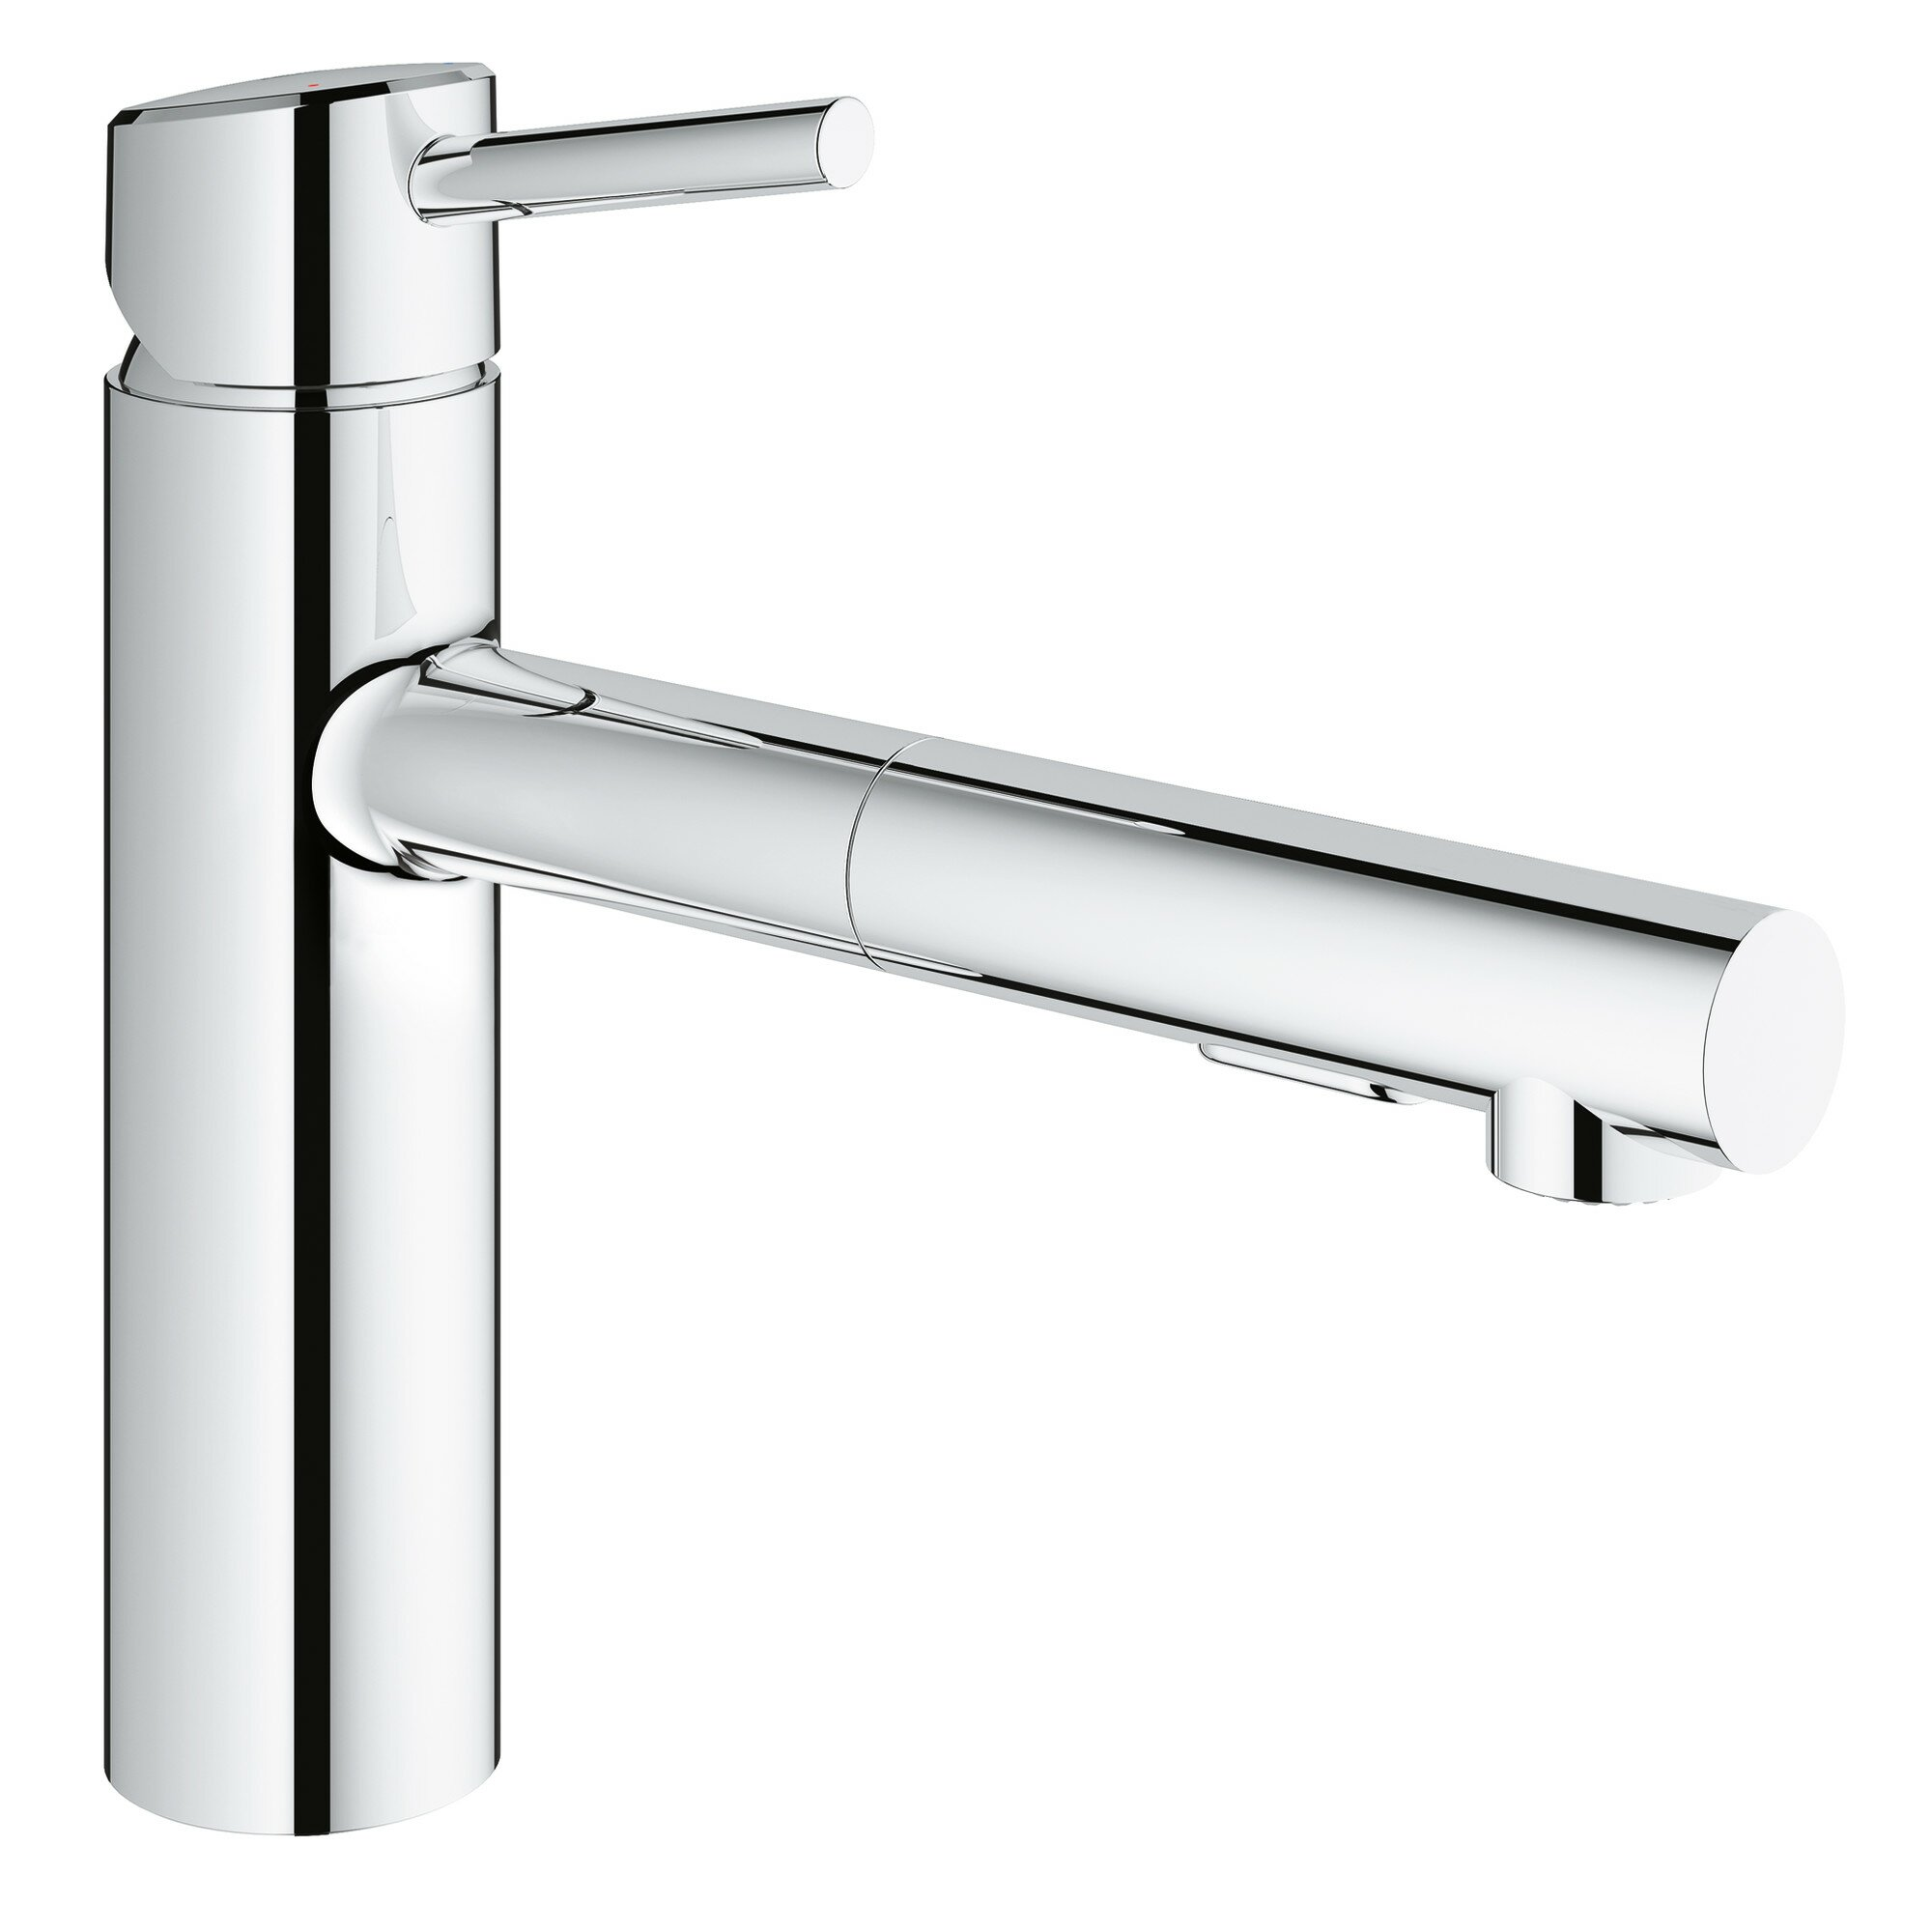 Deck Mount Kitchen Faucet Grohe Concetto Single Handle Deck Mount Kitchen Faucet With Dual